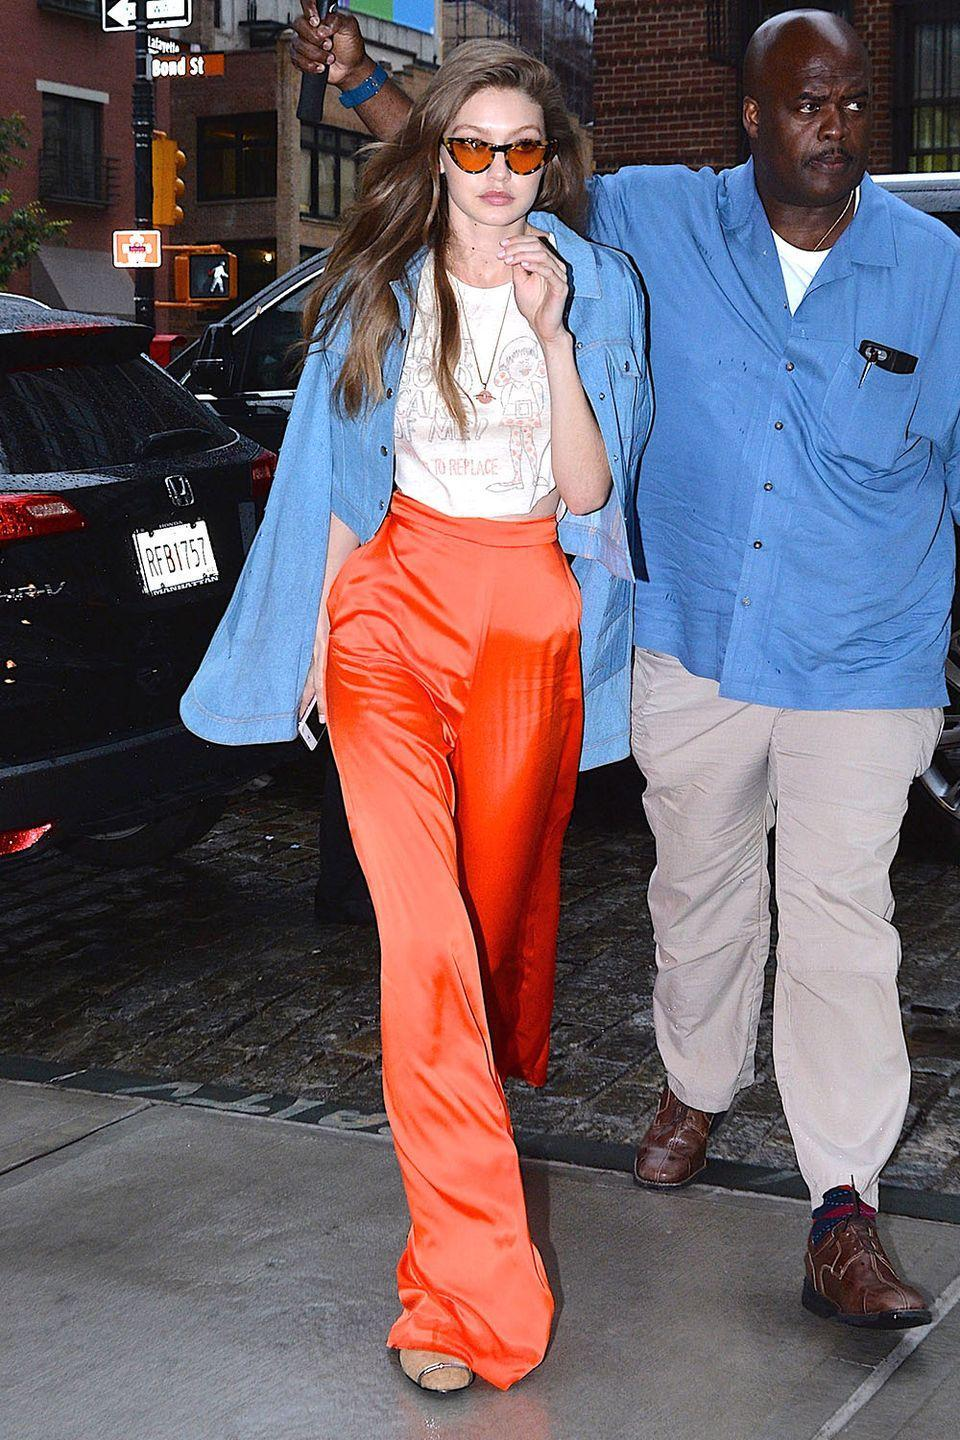 <p>In a baby blue jacket, high-waisted Stella McCartney bright orange pants, retro shades, and a graphic t-shirt while out in New York City. </p>